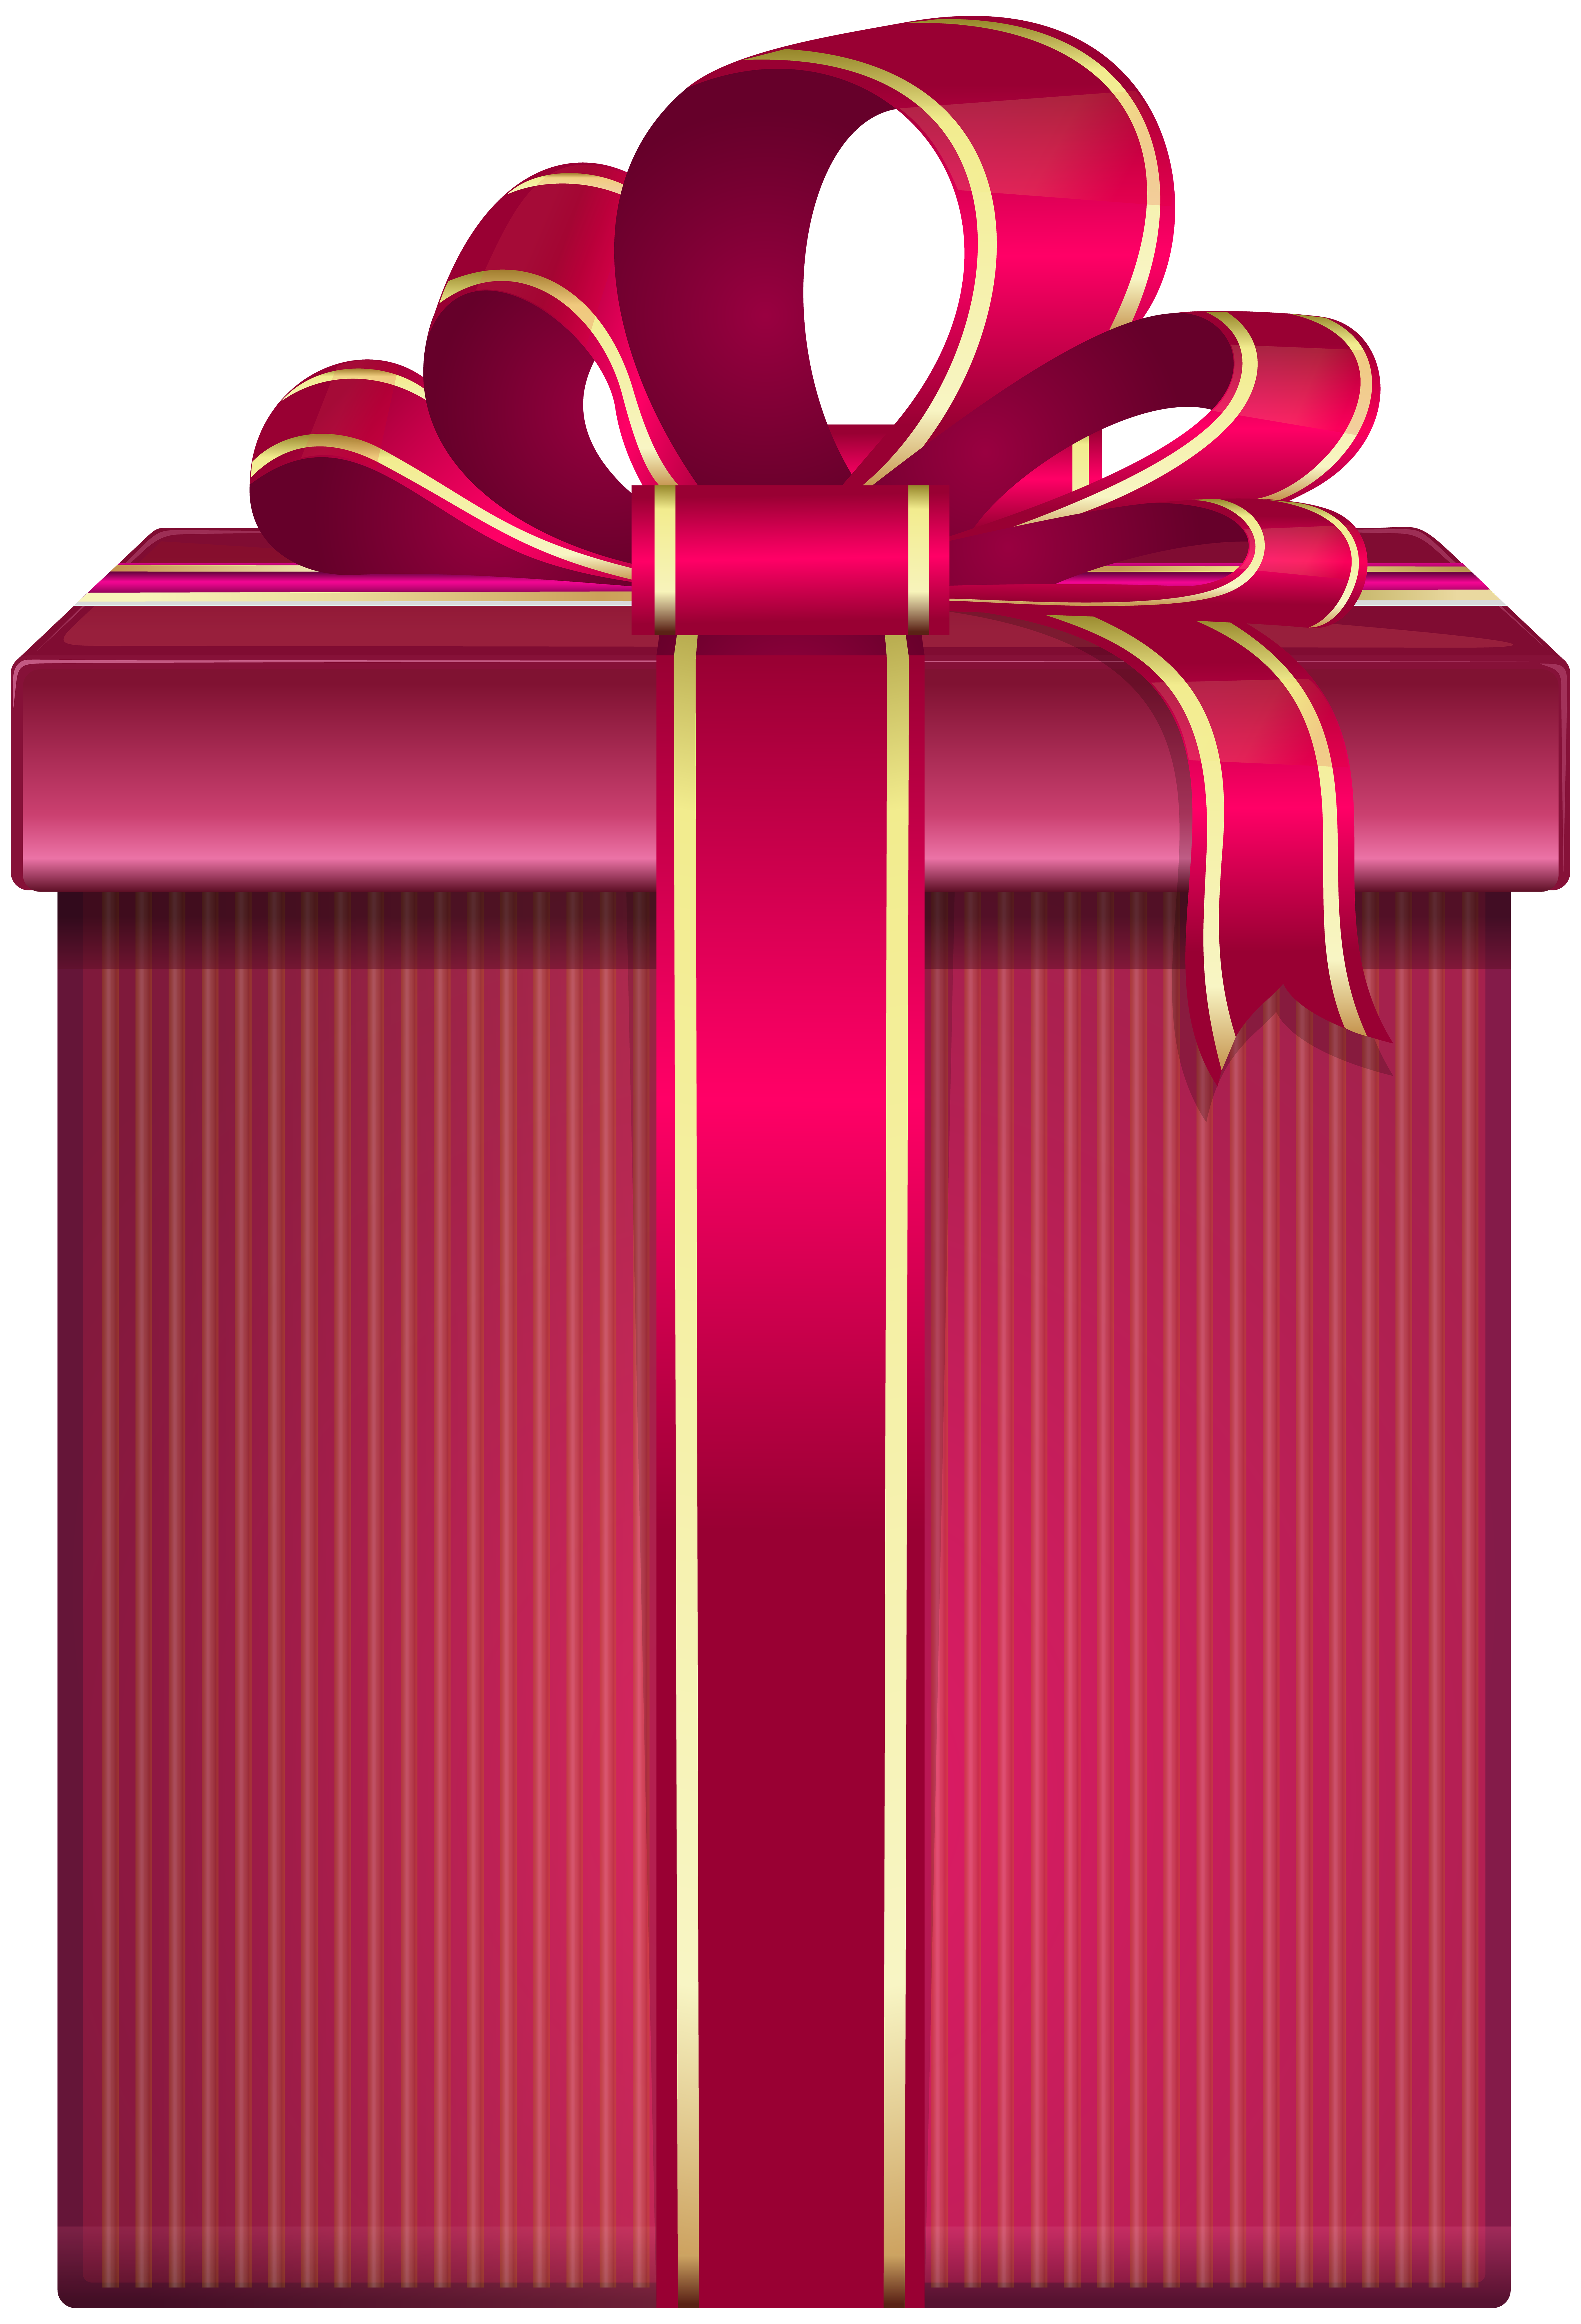 Png clip art best. Gift clipart pink gift